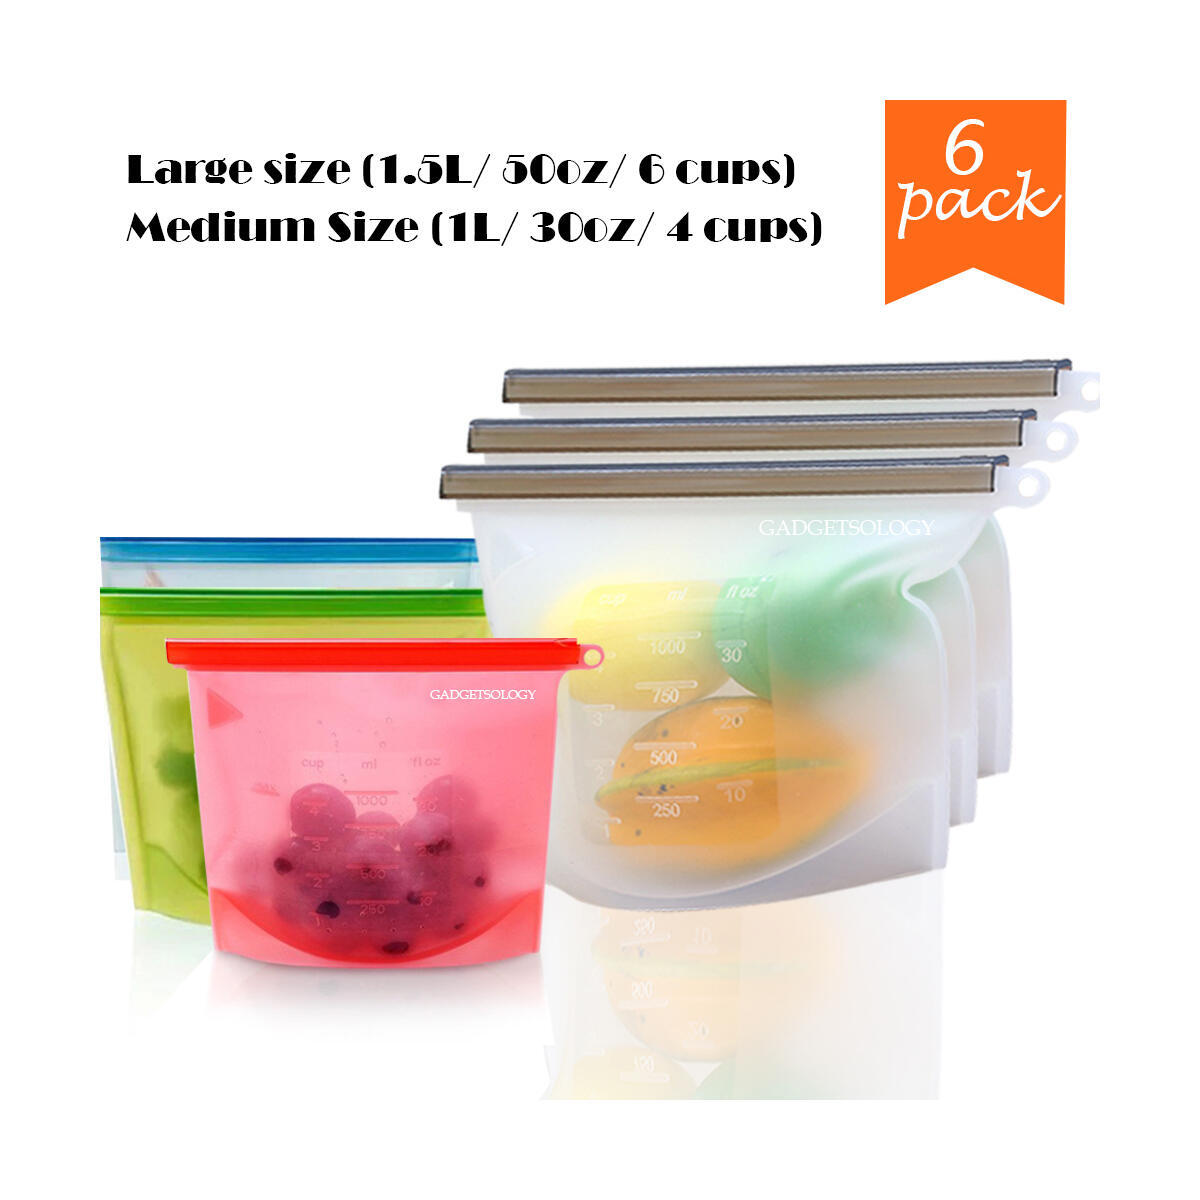 6 x Medium Reusable Silicone Food Bags Eco-Friendly Meal Container, Airtight, Leakproof, Ziplock Seal for Hot or Cold Food Storage Washable